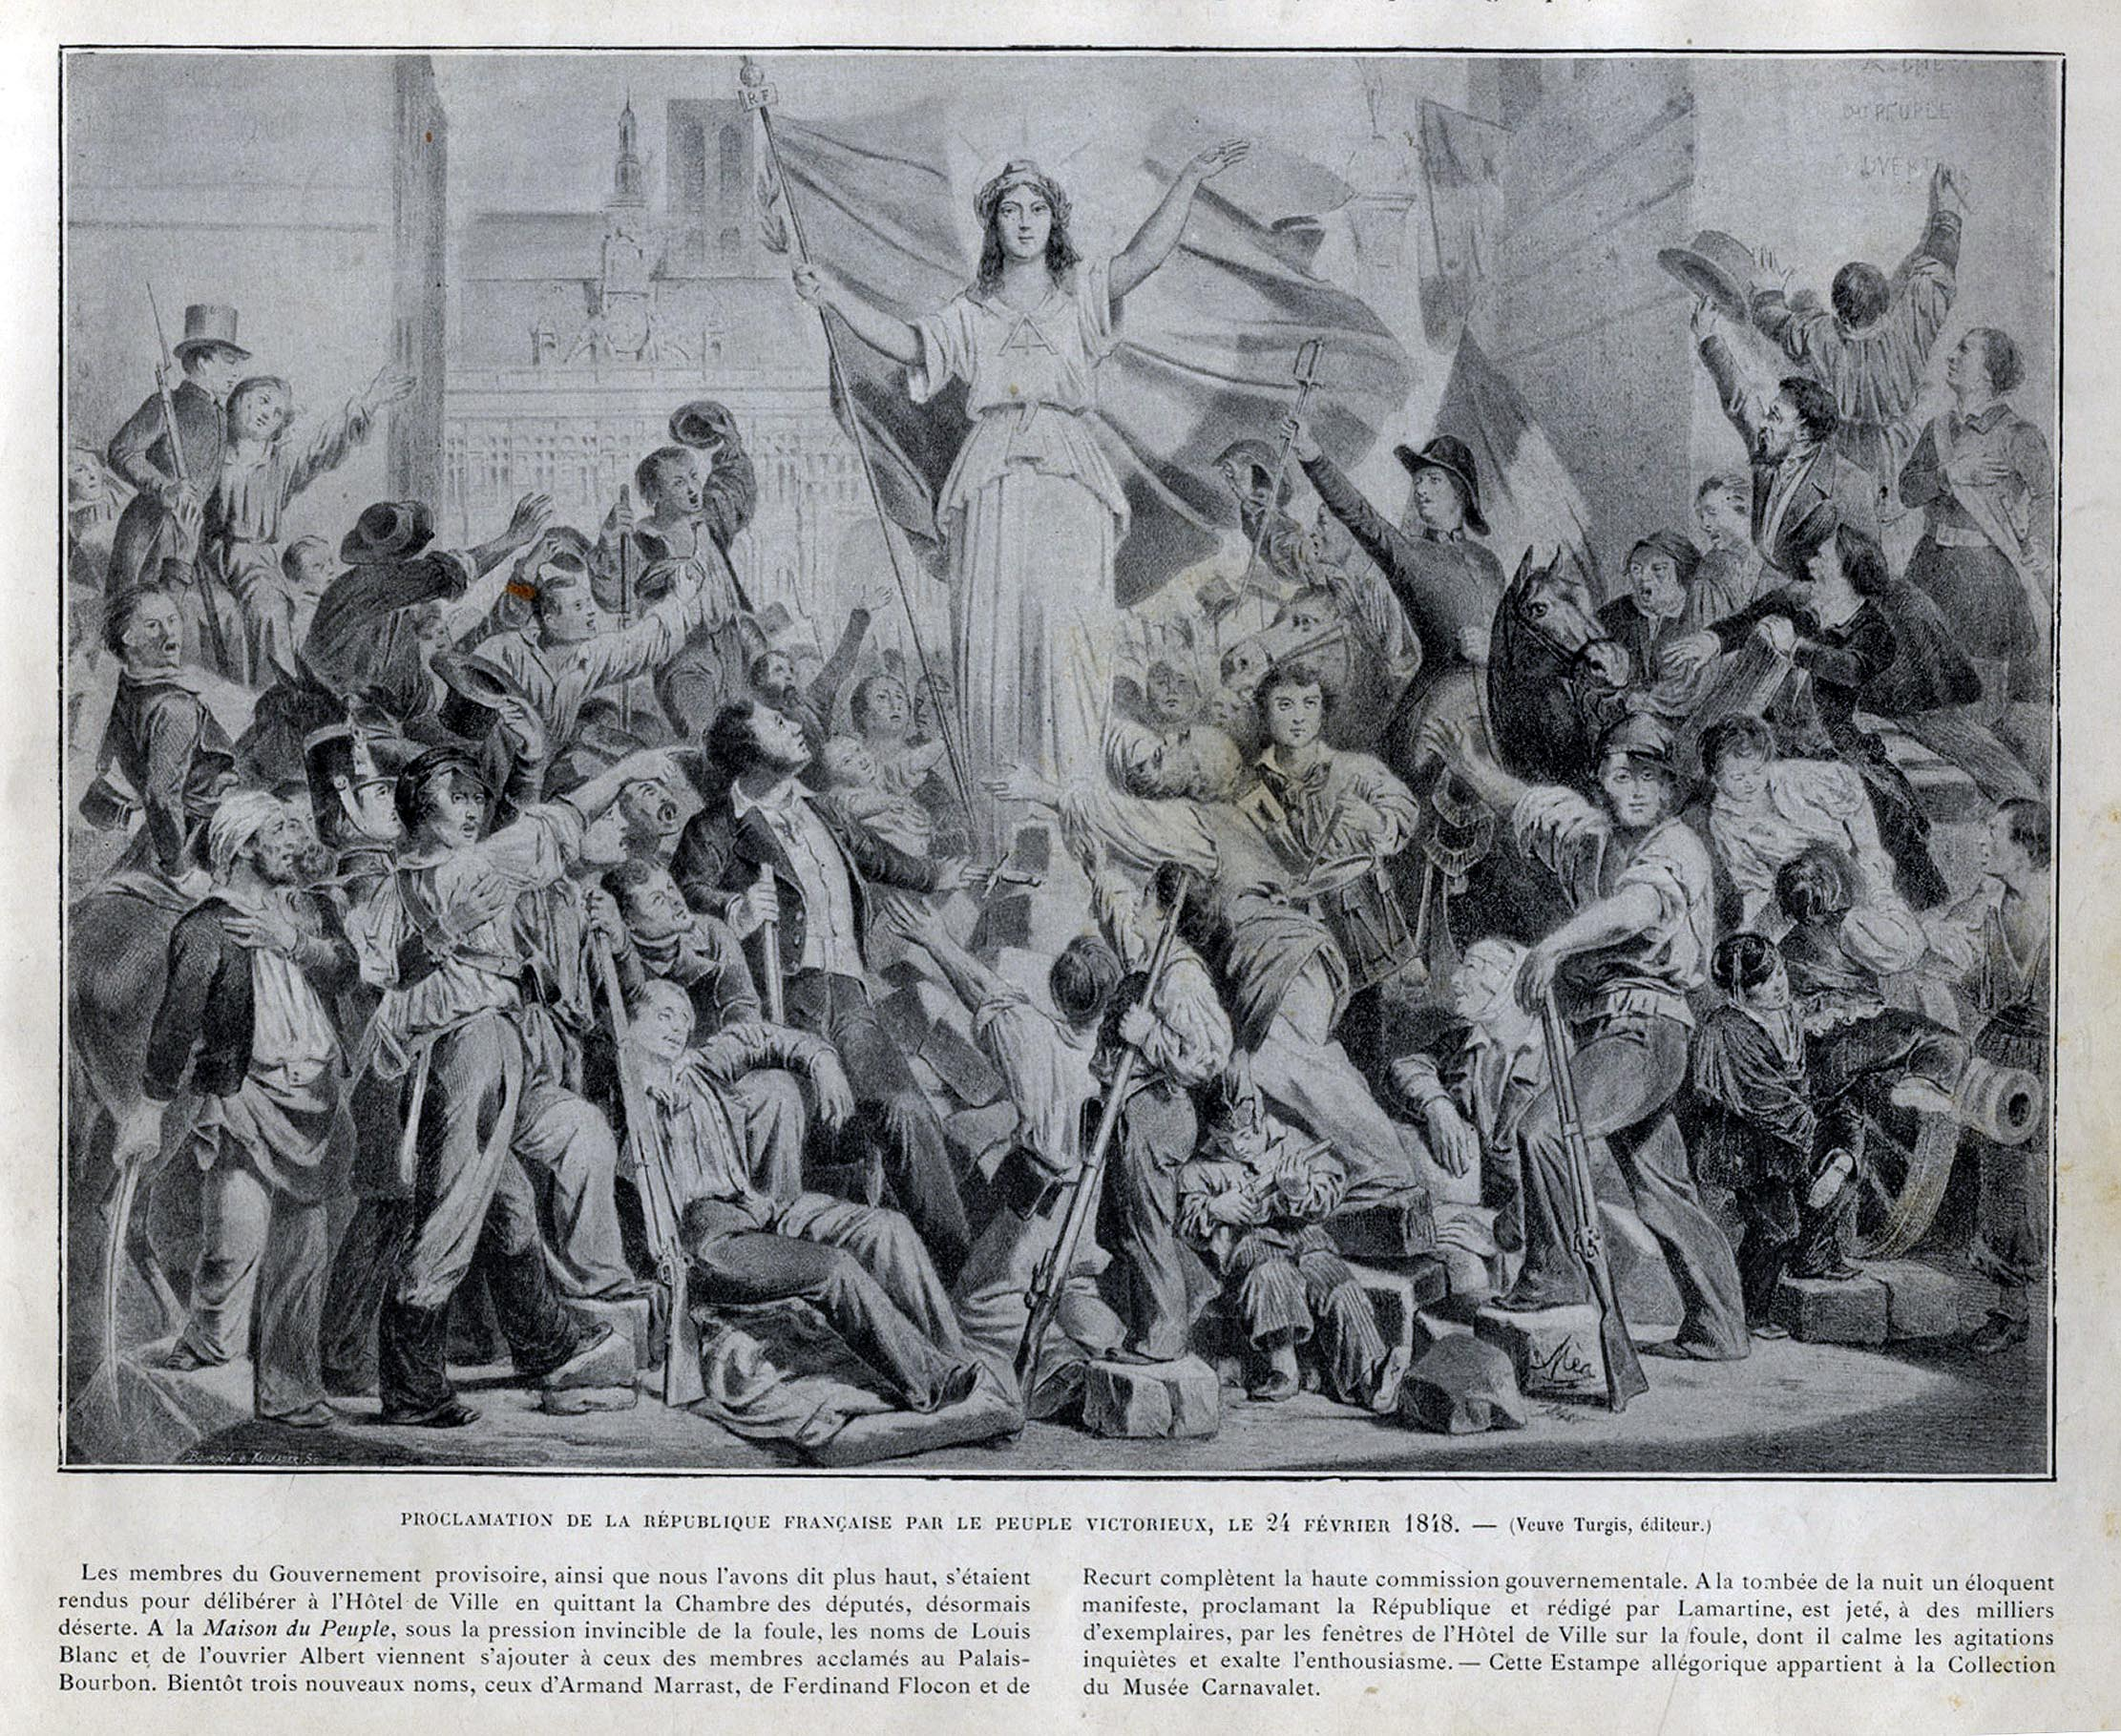 the french and russian revolutions of 1848 The revolutions of 1848, known in some countries as the spring of nations, people's spring, springtime of the peoples, or the year of revolution, were a series of political upheavals throughout europe in 1848.